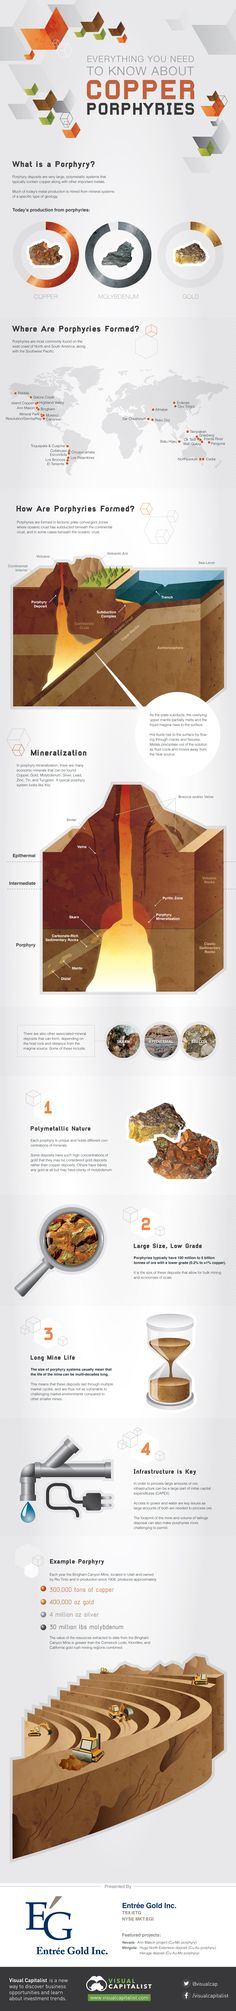 This infographic covers everything you should know about copper porphyries, one of the most important sources of gold, copper, and moly.